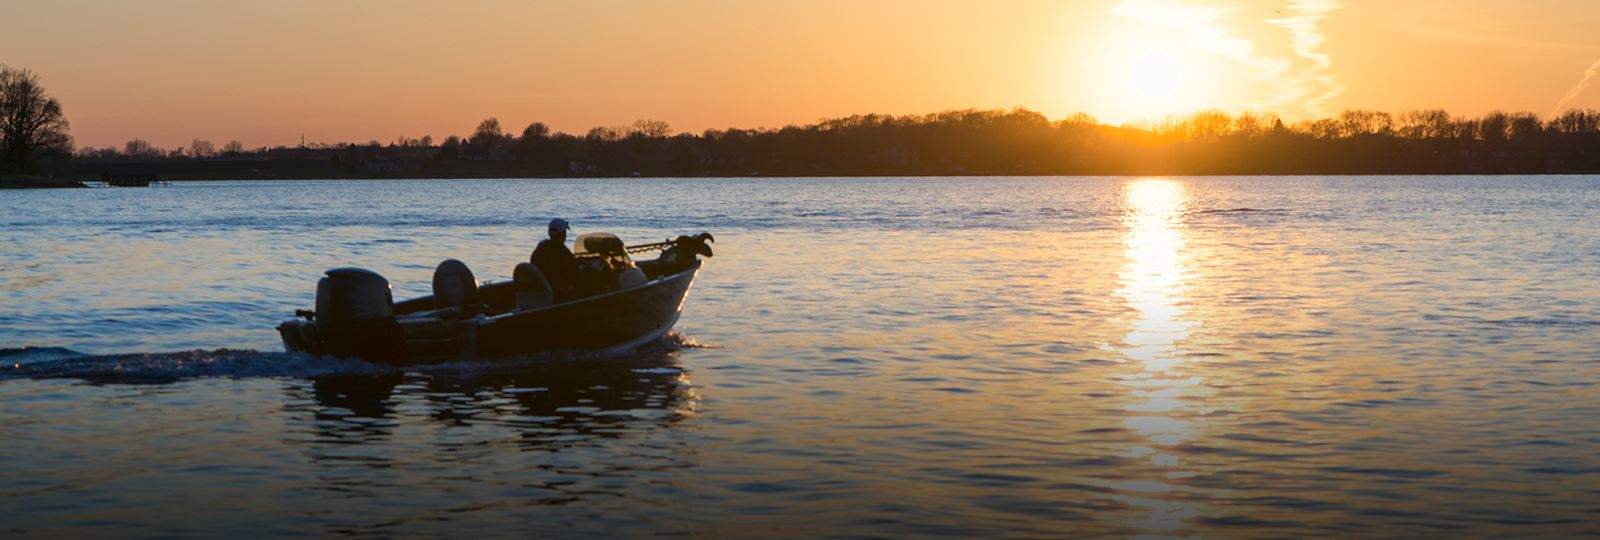 photo of man boating at sunset